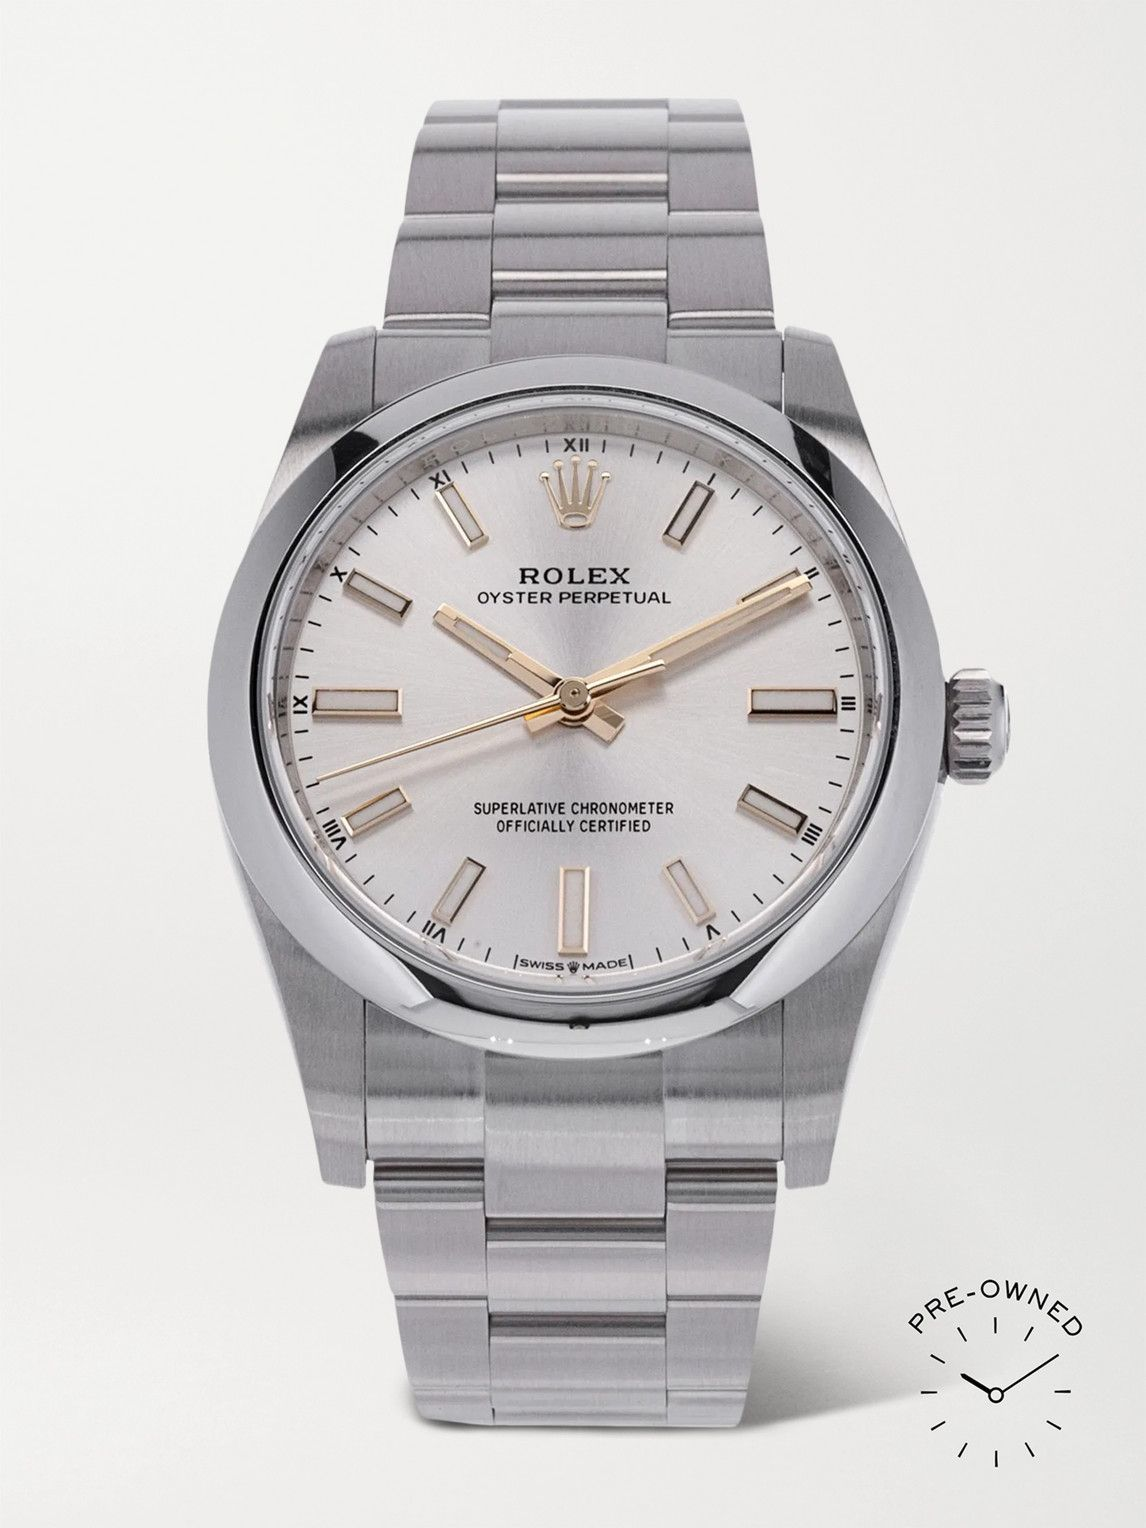 Photo: ROLEX - Pre-Owned 2016 Oyster Perpetual Automatic 34mm Oystersteel Watch, Ref. No. 124200